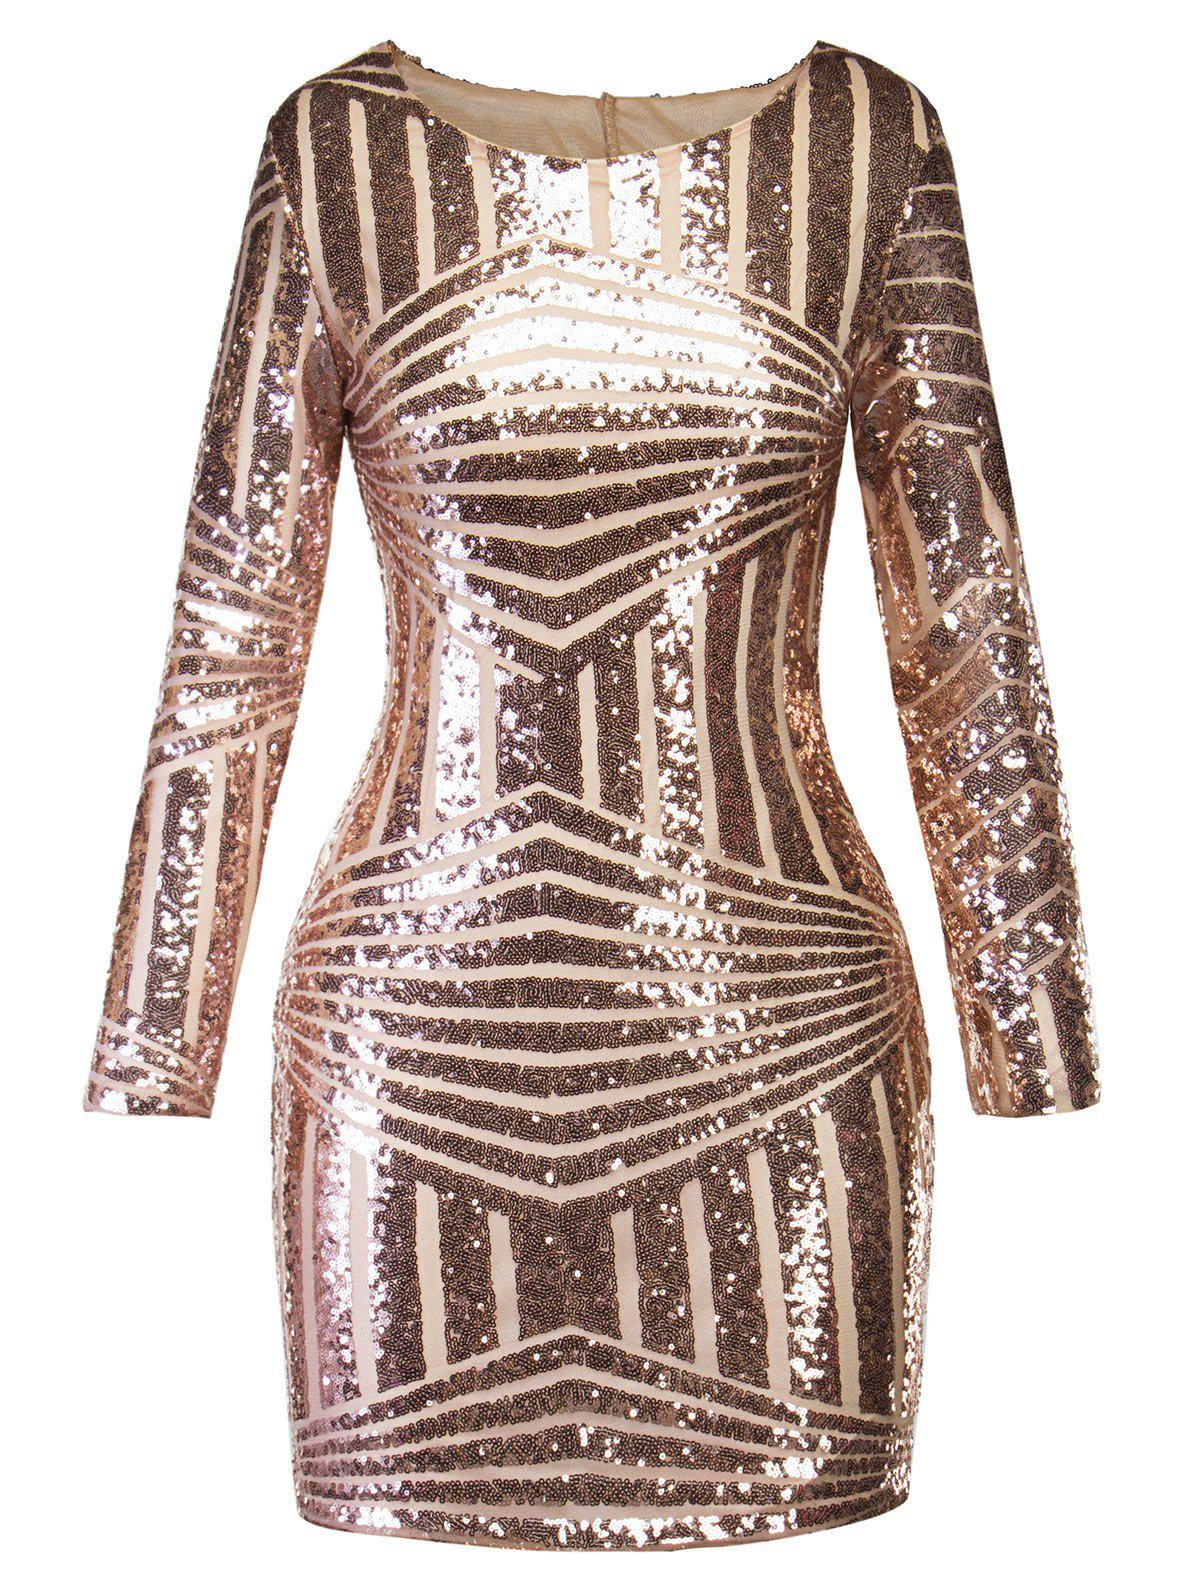 New Sequin Cut Out Sparkly Mini Evening Dress